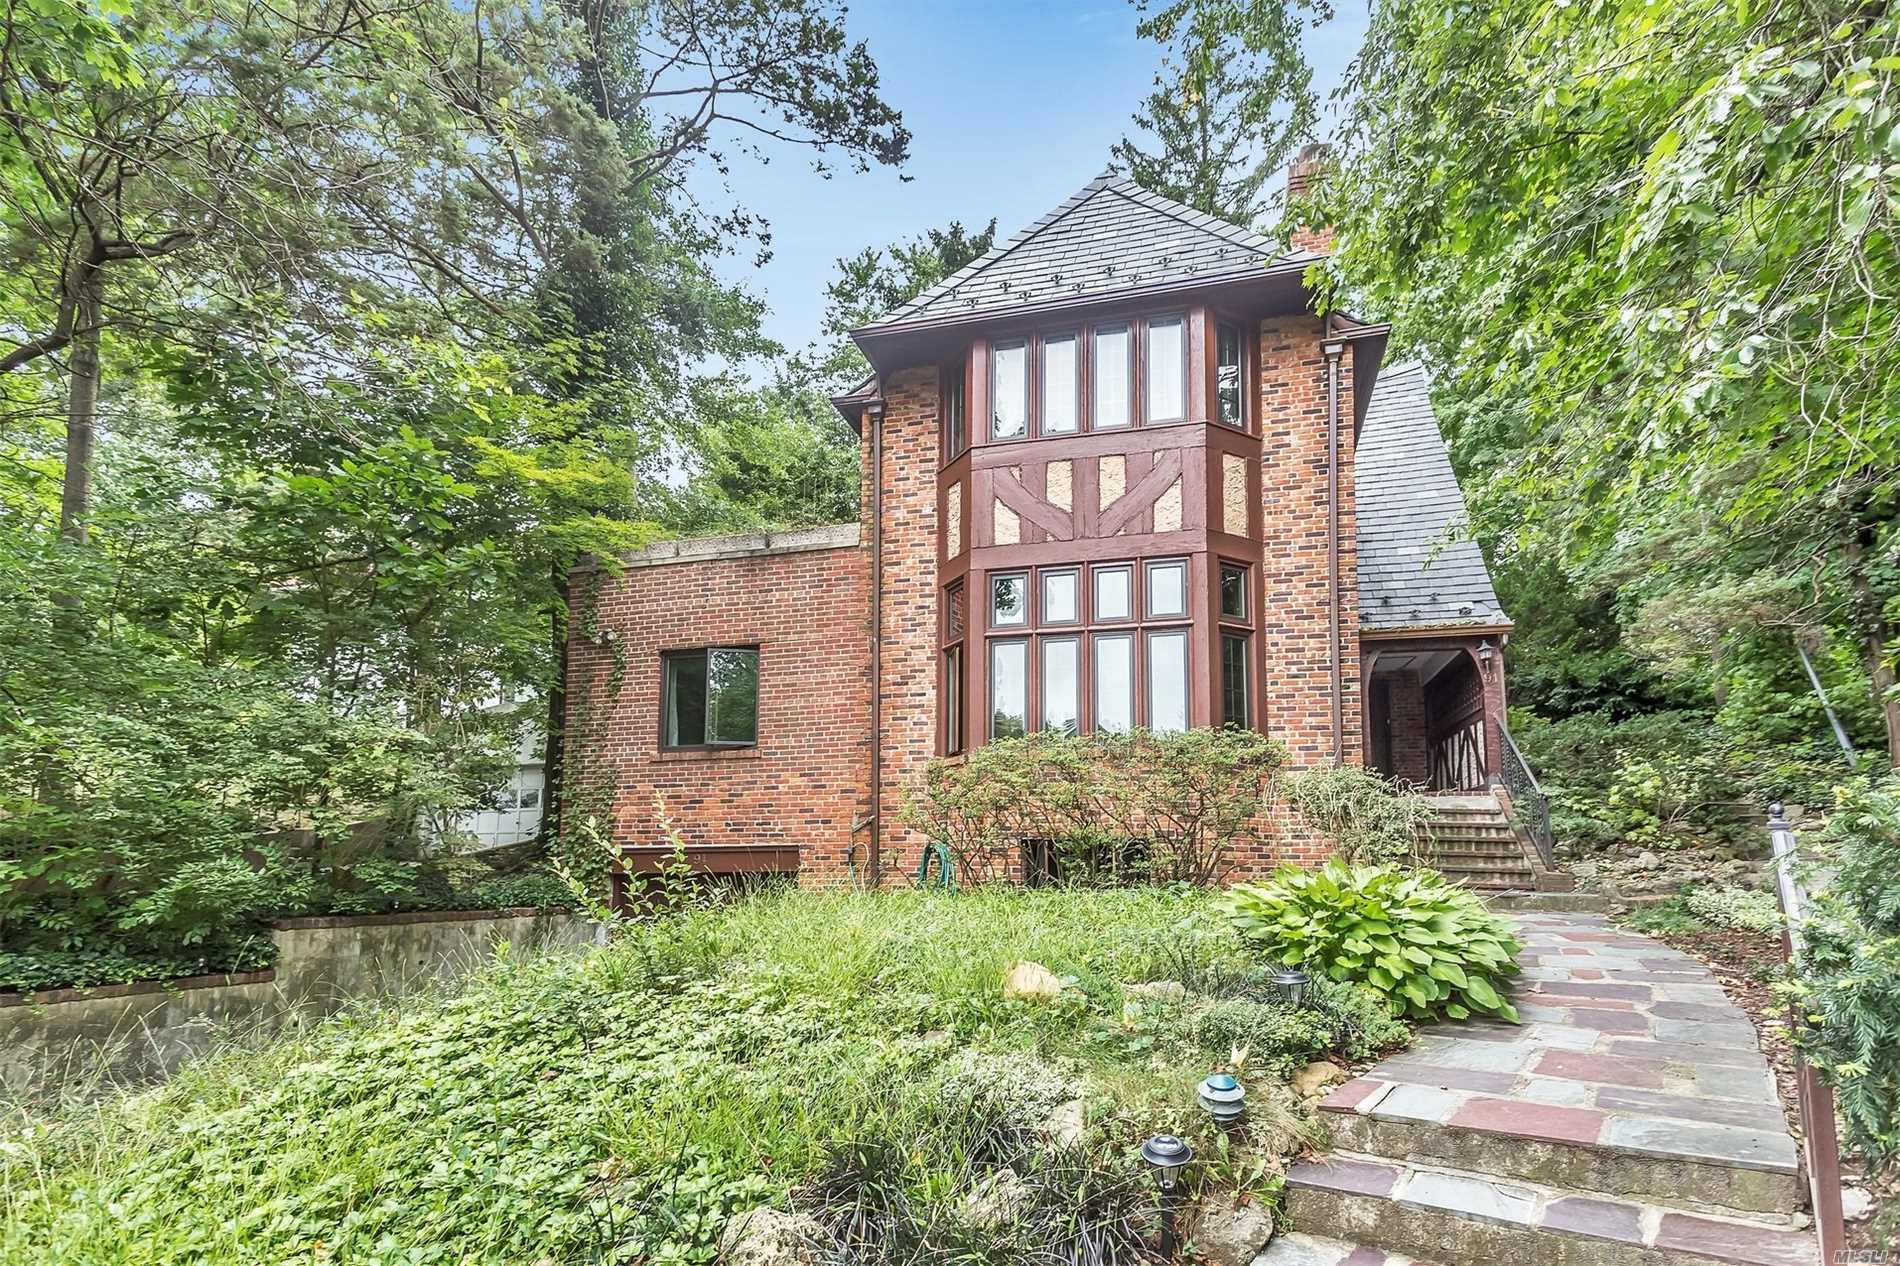 Classic Tudor Located In Village Of Kensington, Southern Exposure, A Lot Of Upgrades, Beautiful Hardwood Floors Through Out, Large Bedrooms & Storage. Option Of Great Neck North /South School! Great Opportunity!